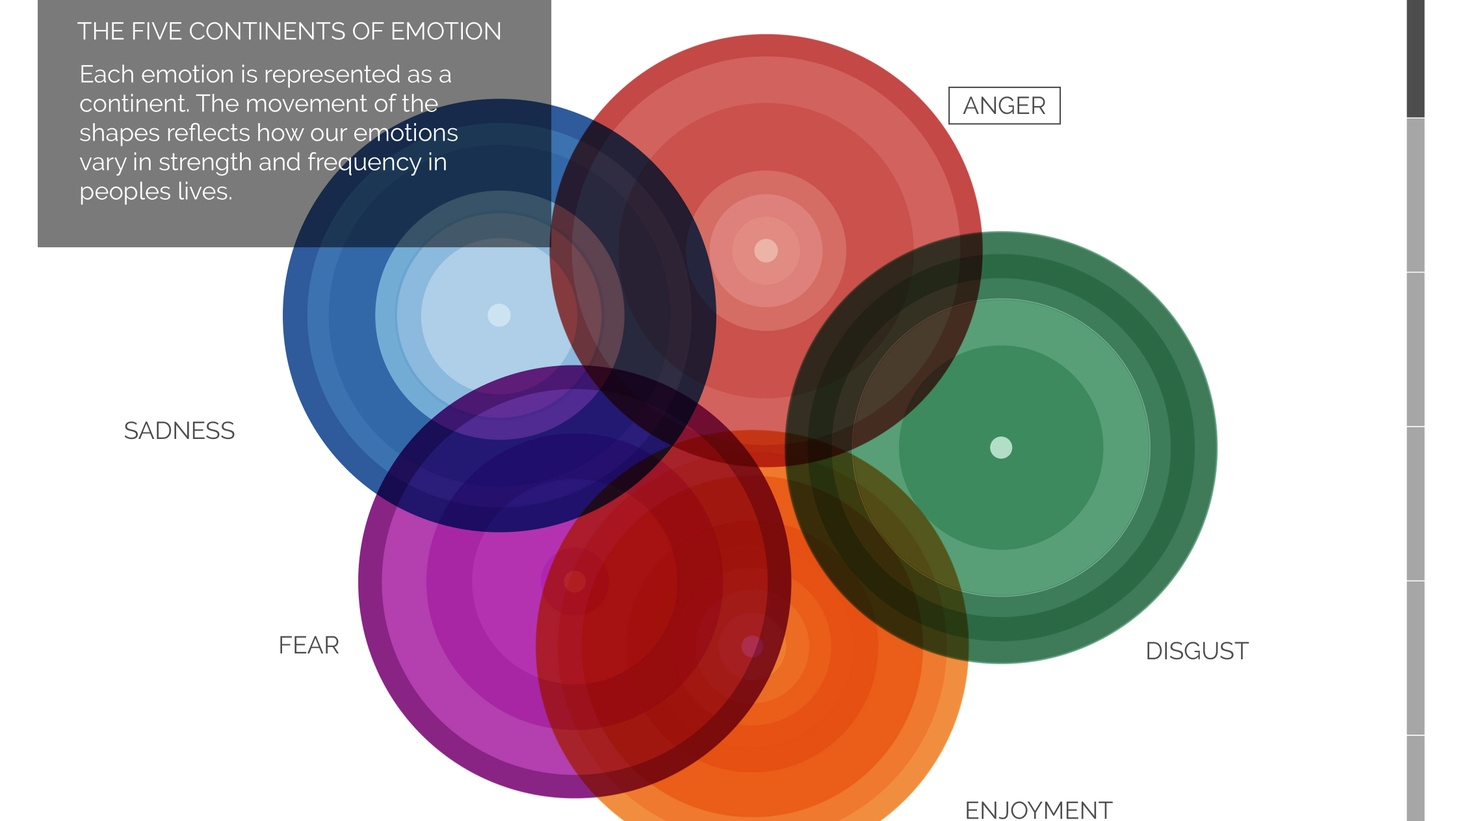 Atlas Of Emotions, an interactive tool designed to build emotional awareness, inviting users to visualize, identify and explore five primary emotions in order to gain a better understanding of how they influence daily life (2016). Project partner: Paul Ekman and His Holiness the Dalai Lama.